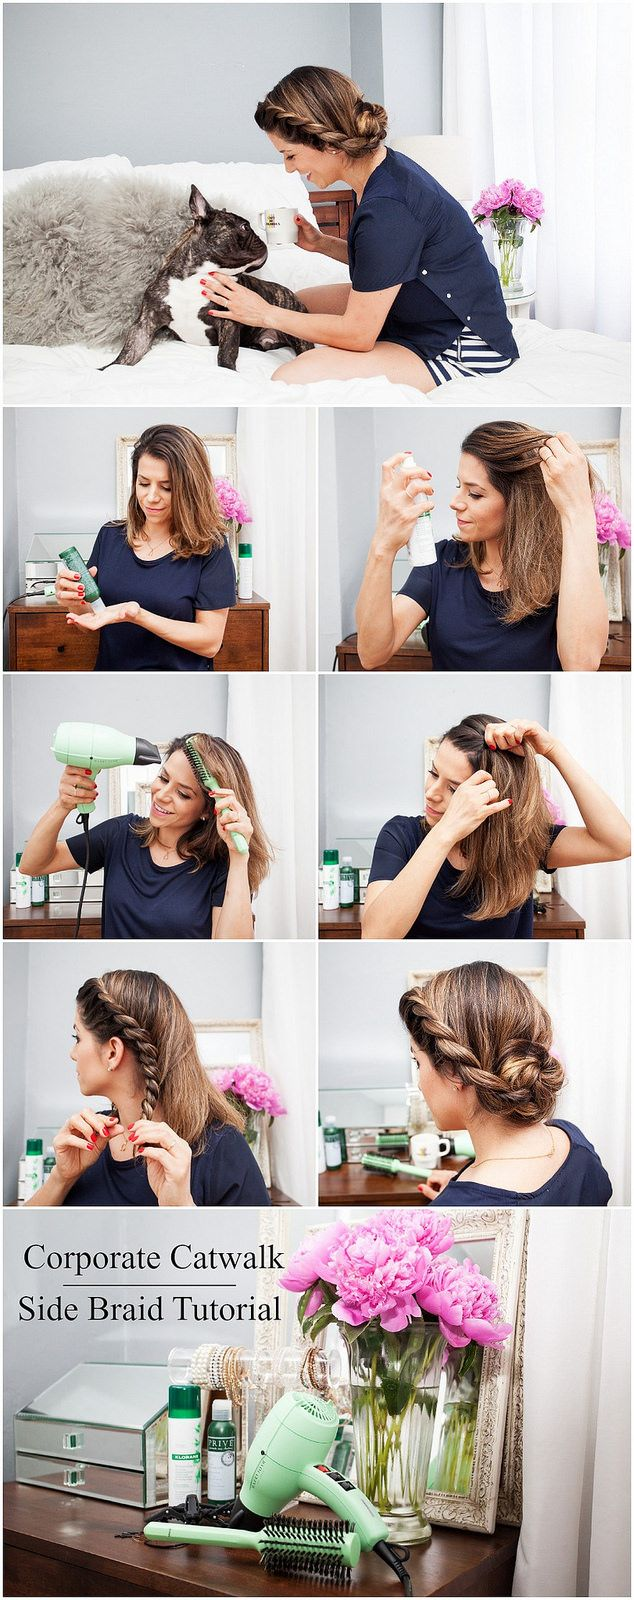 A simple yet gorgeous side braid tutorial using the little green gem